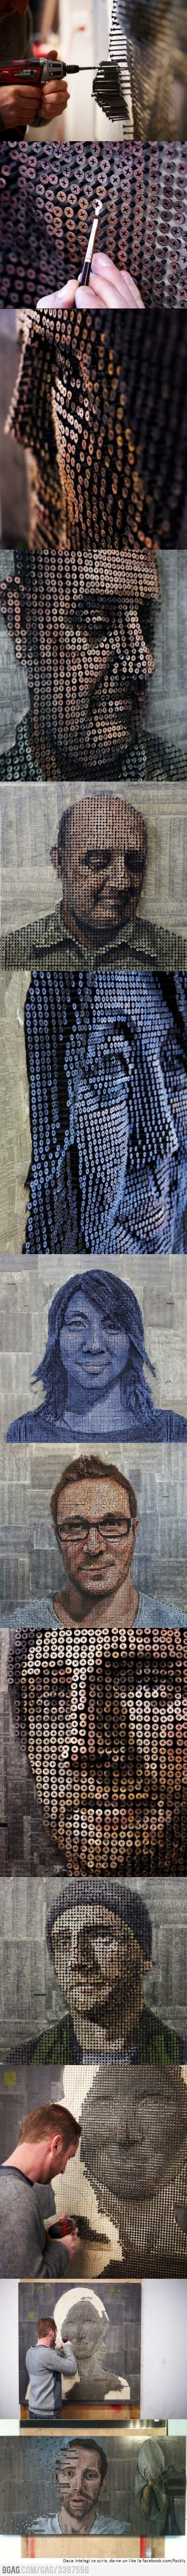 Amazing 3D portraits made out of screws by Andrew Myers.